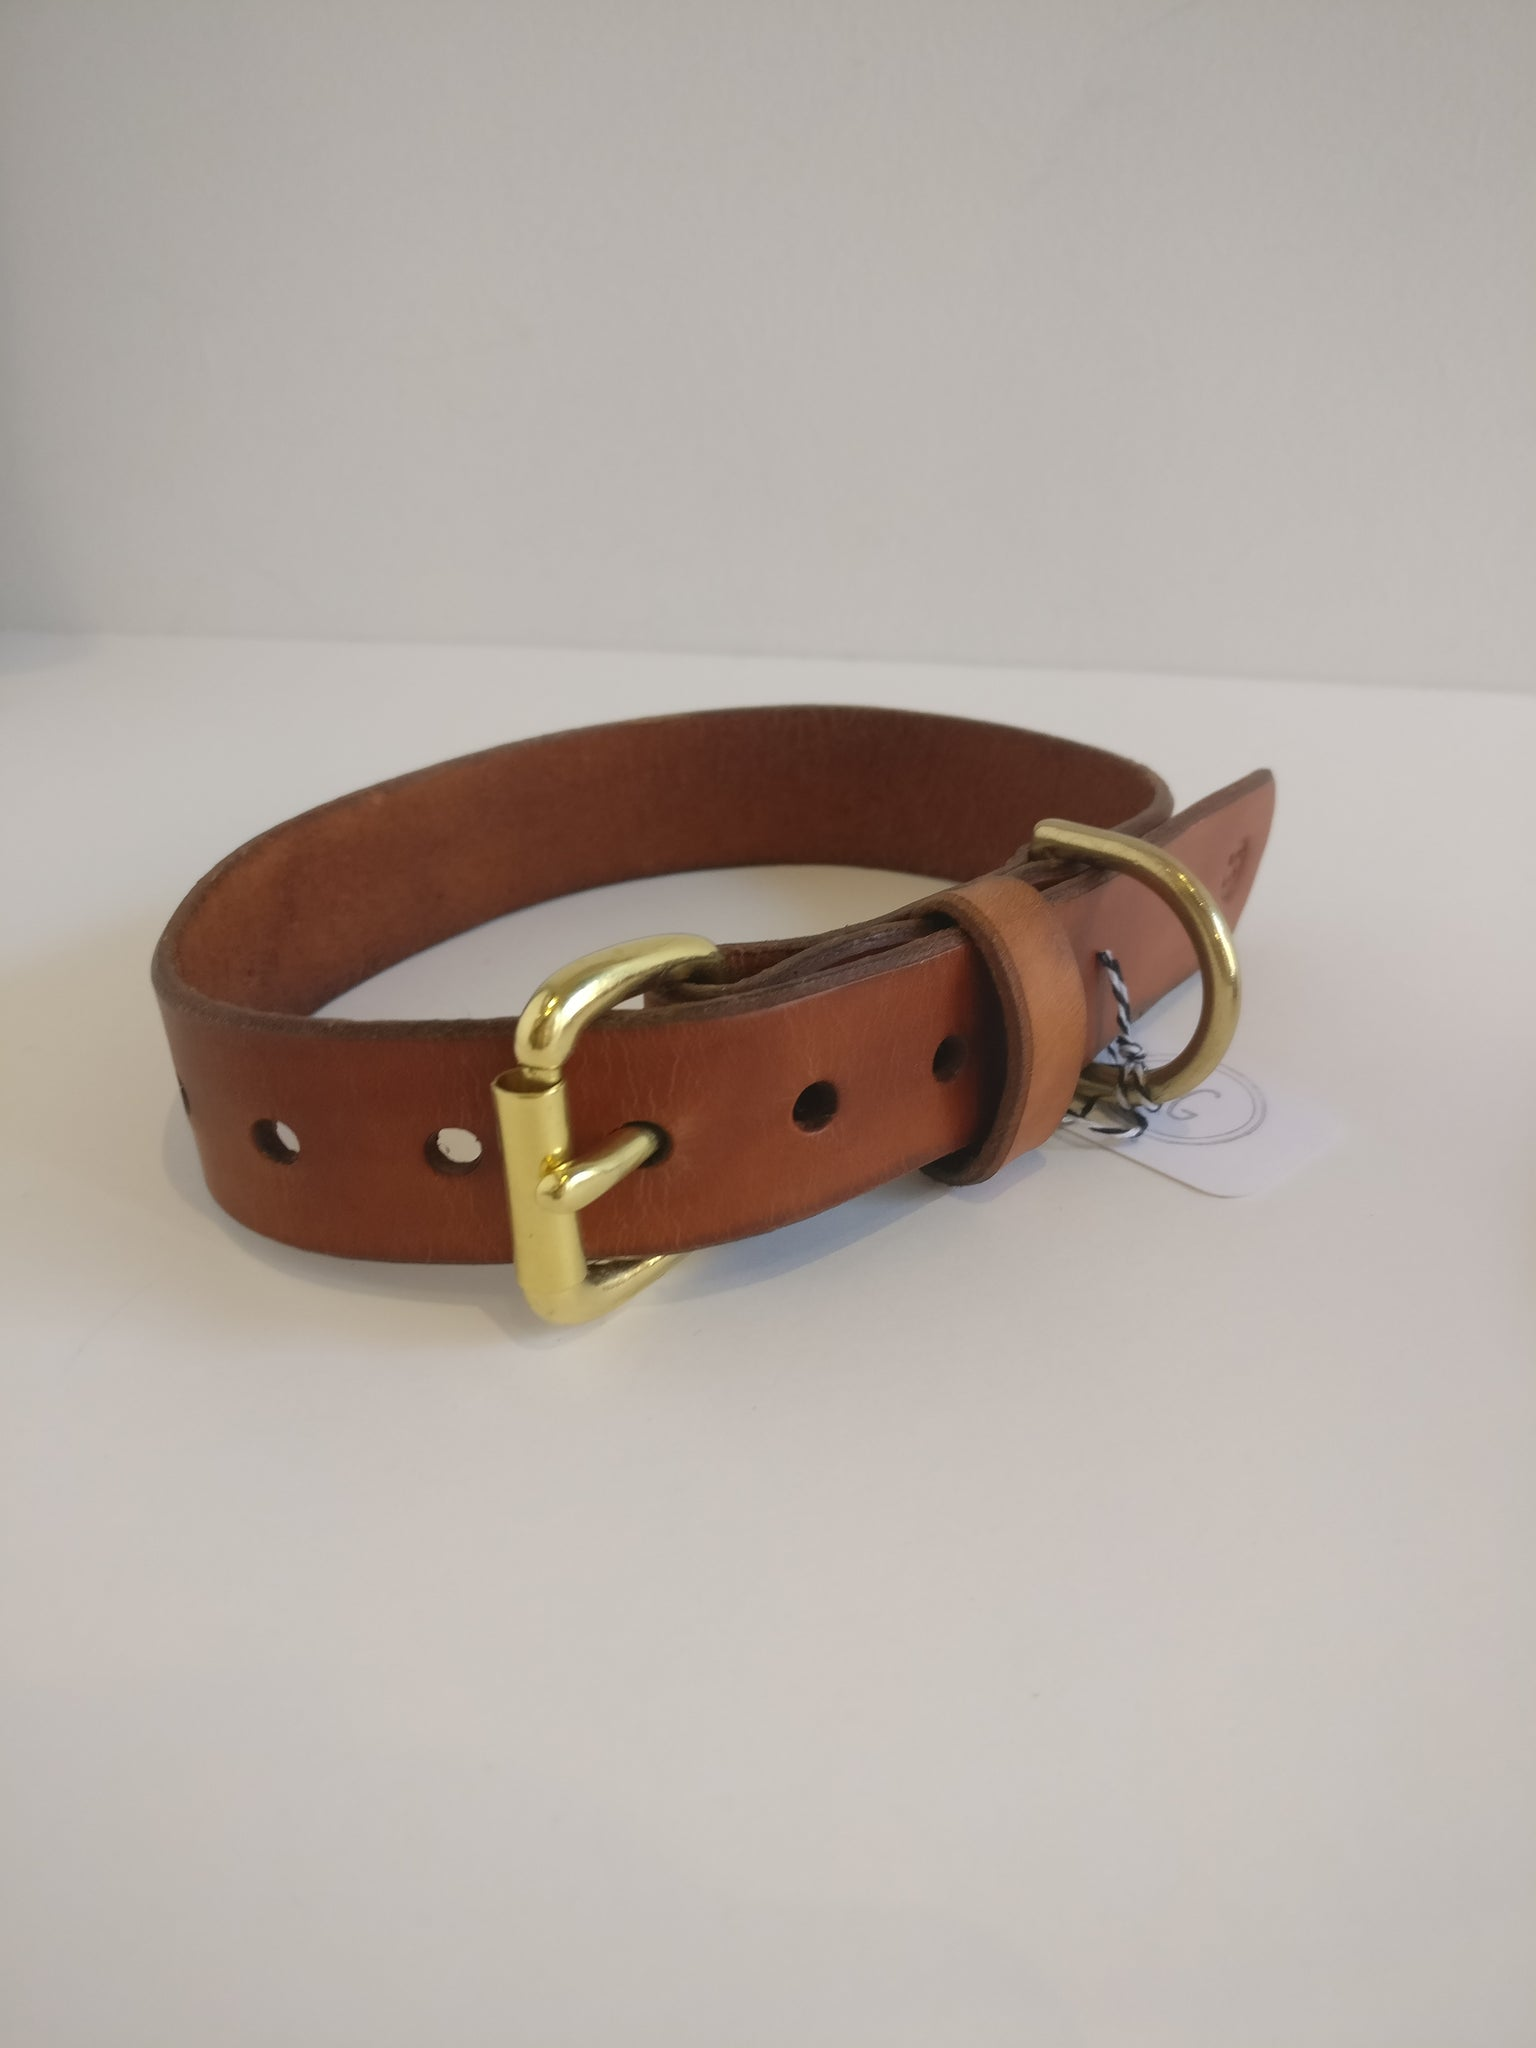 Medium Dog Collar - Brown